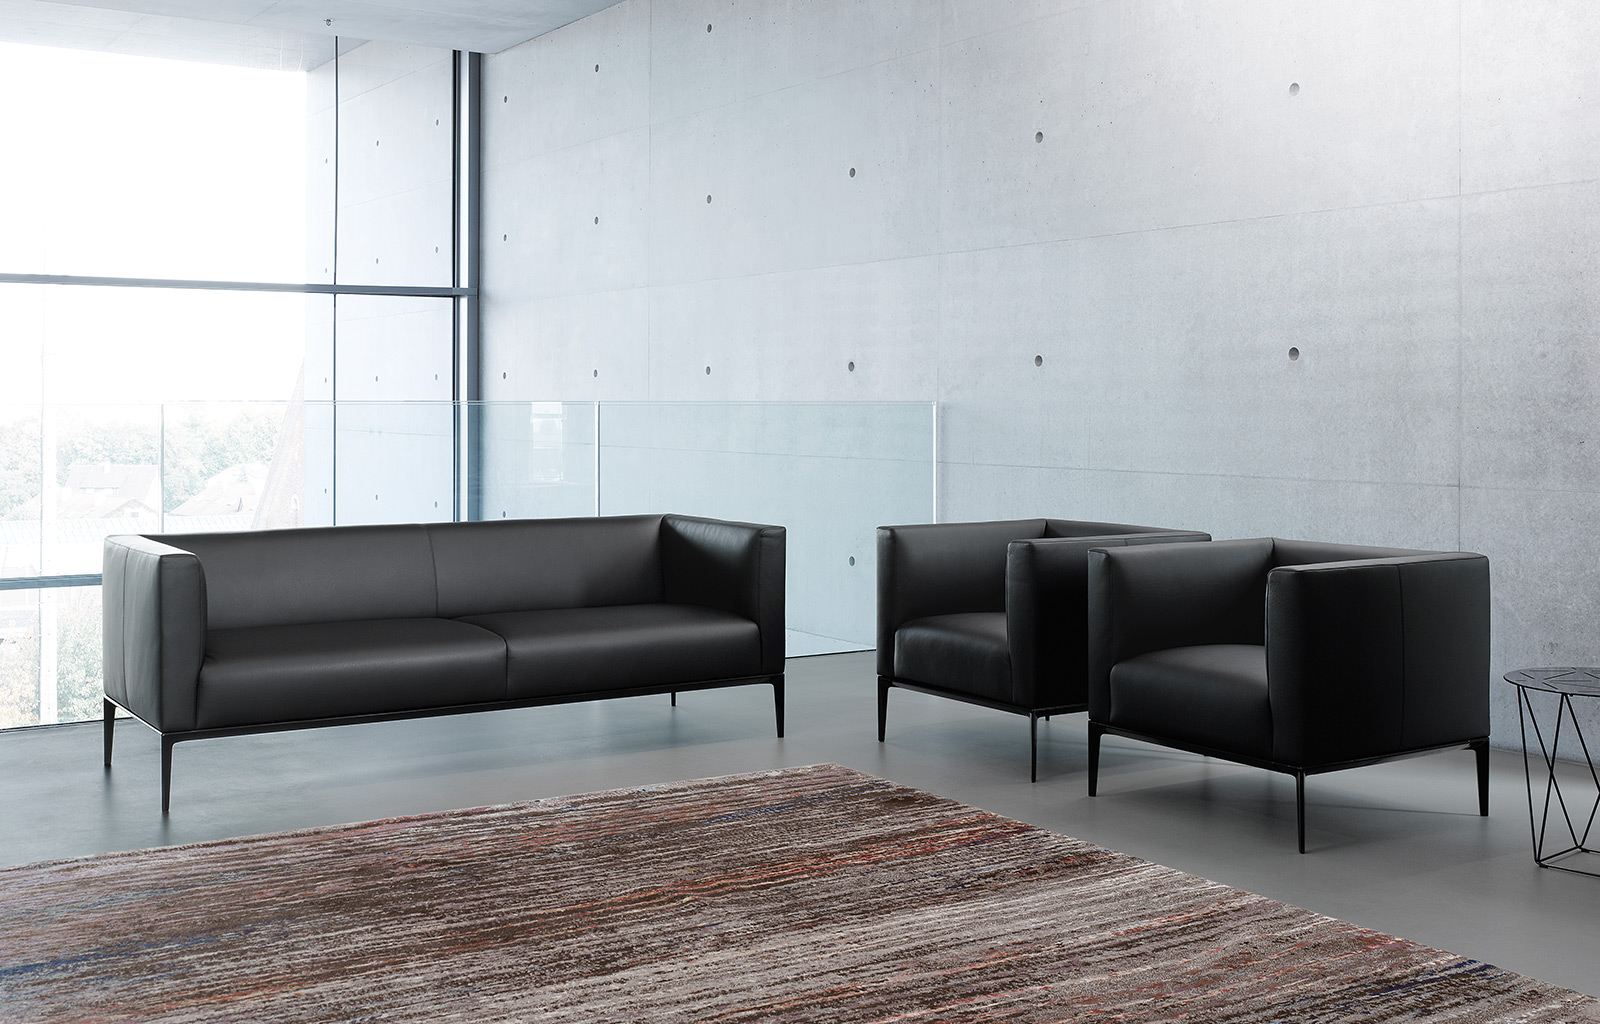 walter knoll jaan m belzentrum. Black Bedroom Furniture Sets. Home Design Ideas